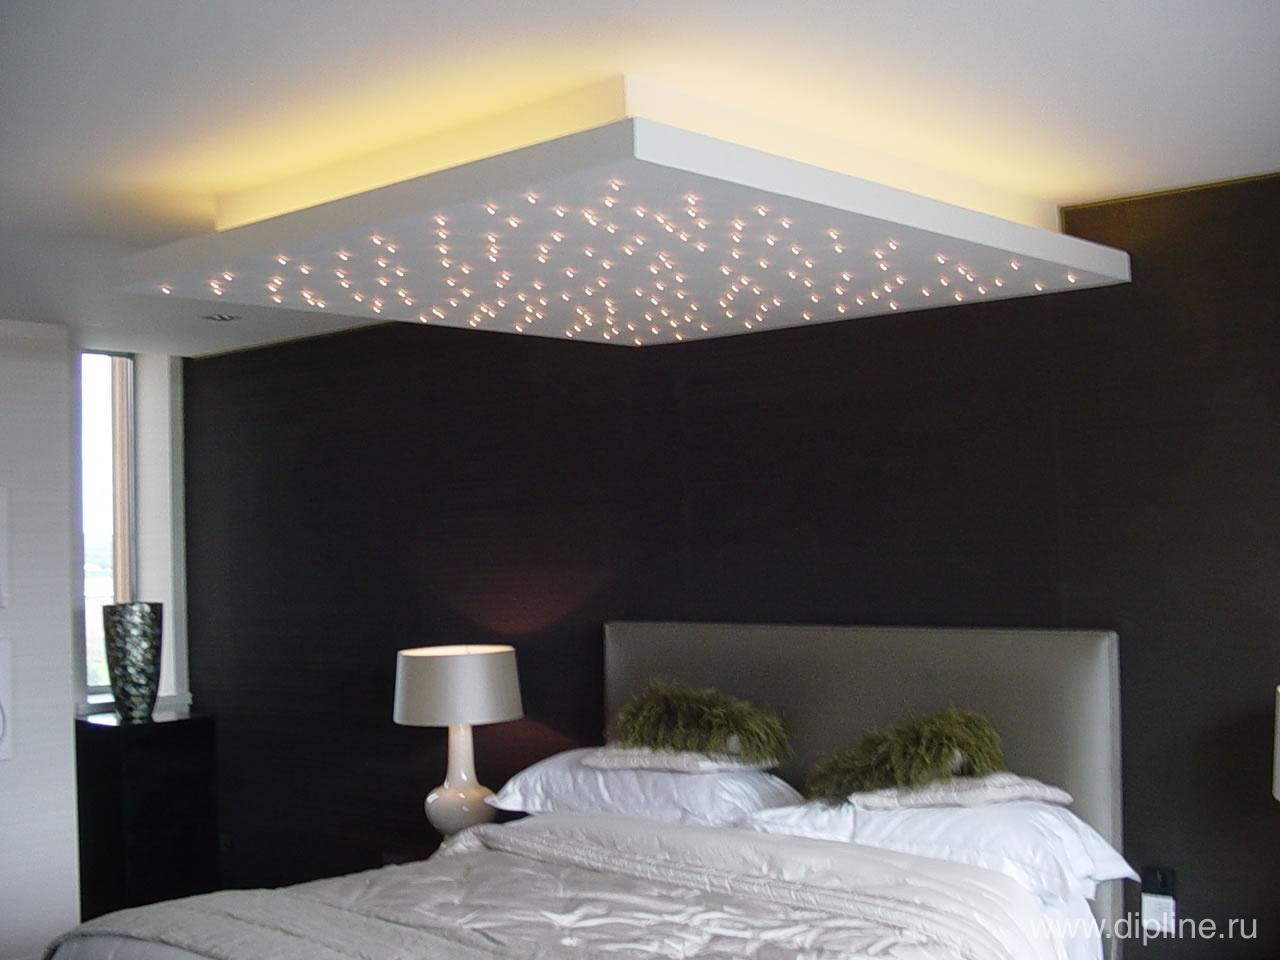 toutes les astuces pour un int rieur la d co led le ciel lumineux en led pour garder la. Black Bedroom Furniture Sets. Home Design Ideas